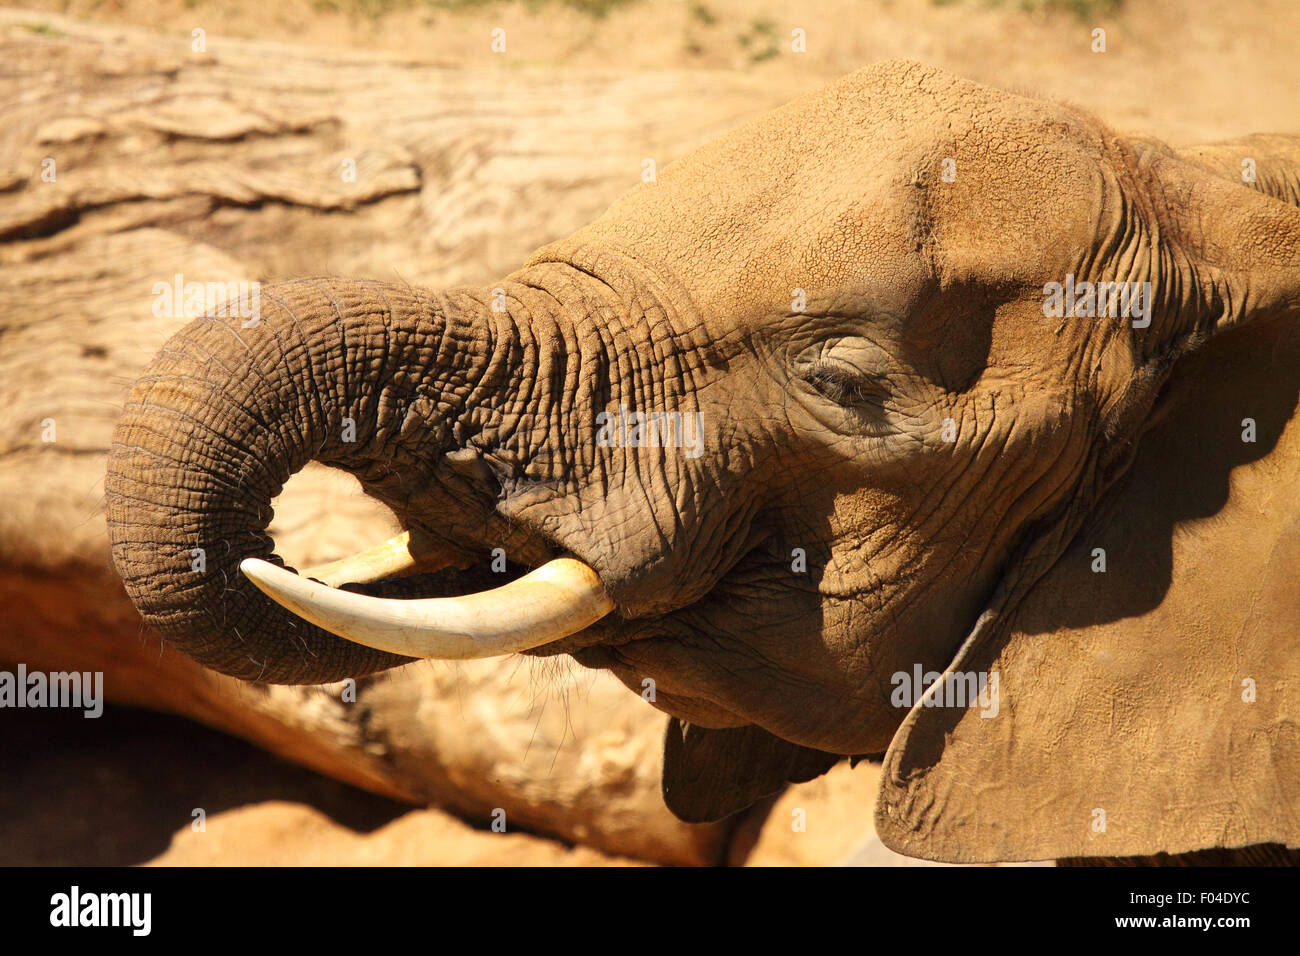 An Elephant drinking with its long trunk. - Stock Image